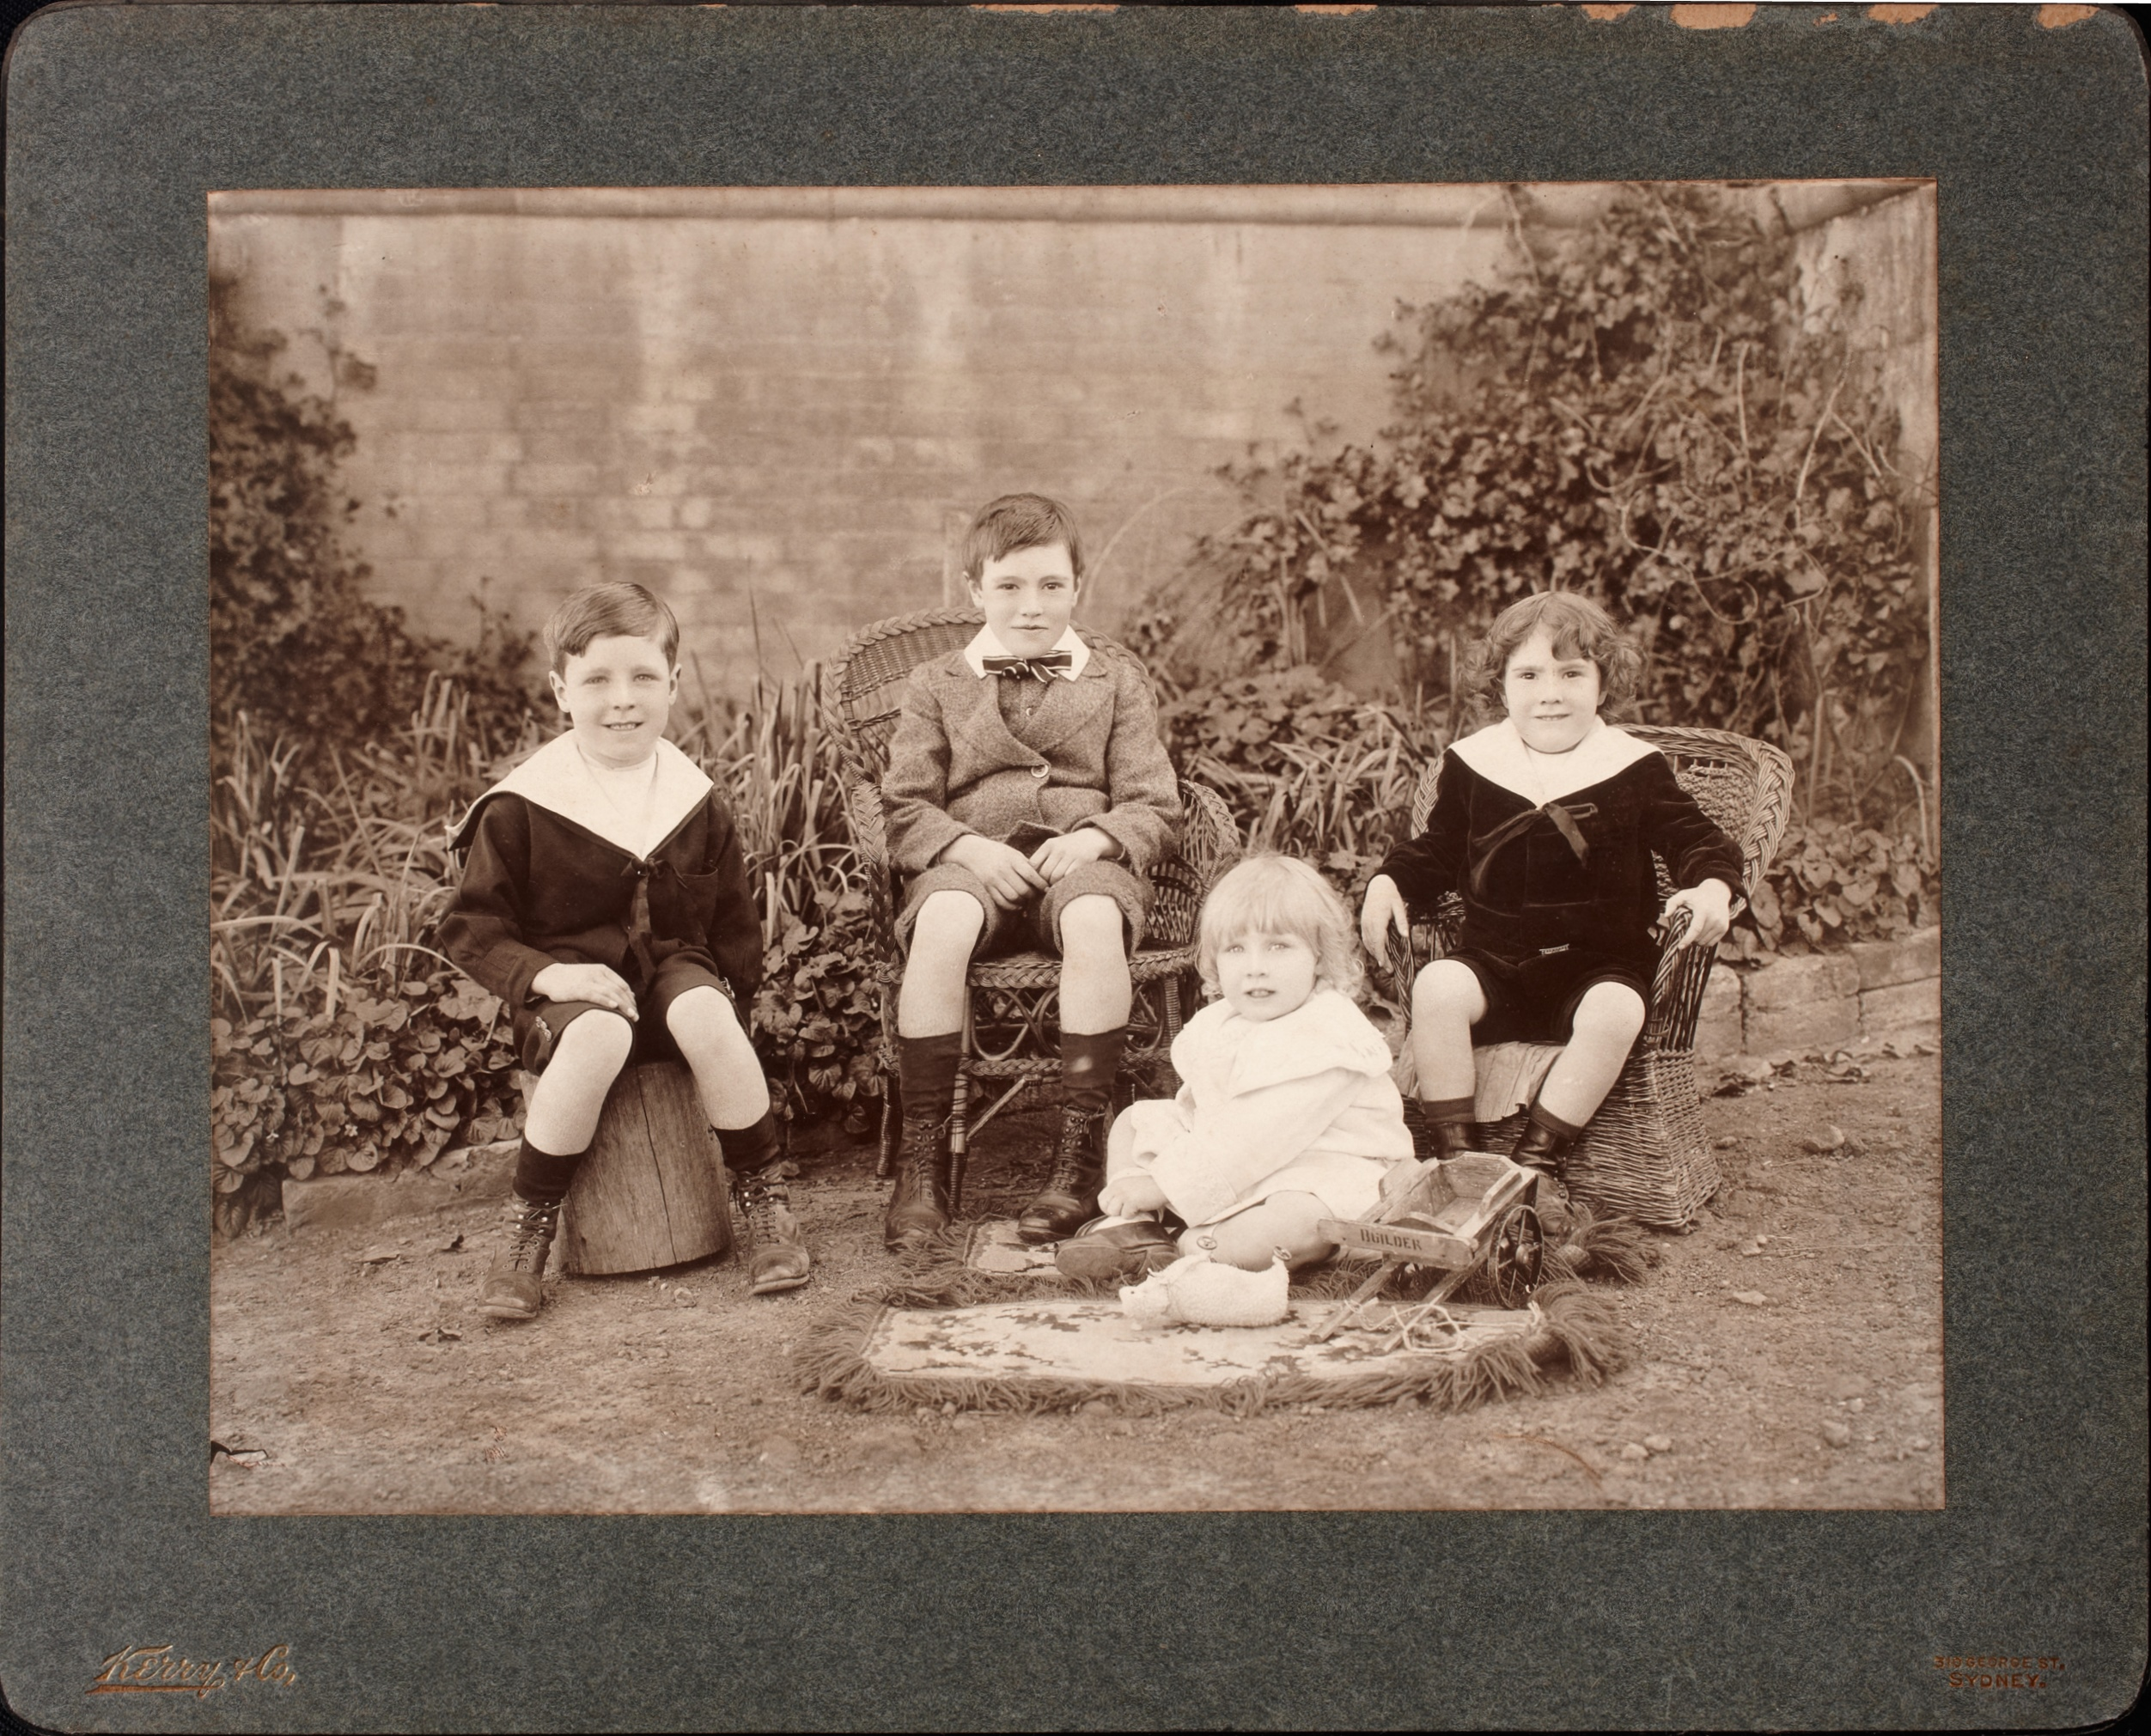 Studio photograph of the Terry brothers - Rod, Geoff, Gerald and Ted - children of George and Nina Terry, taken around 1907 / Kerry & Co.